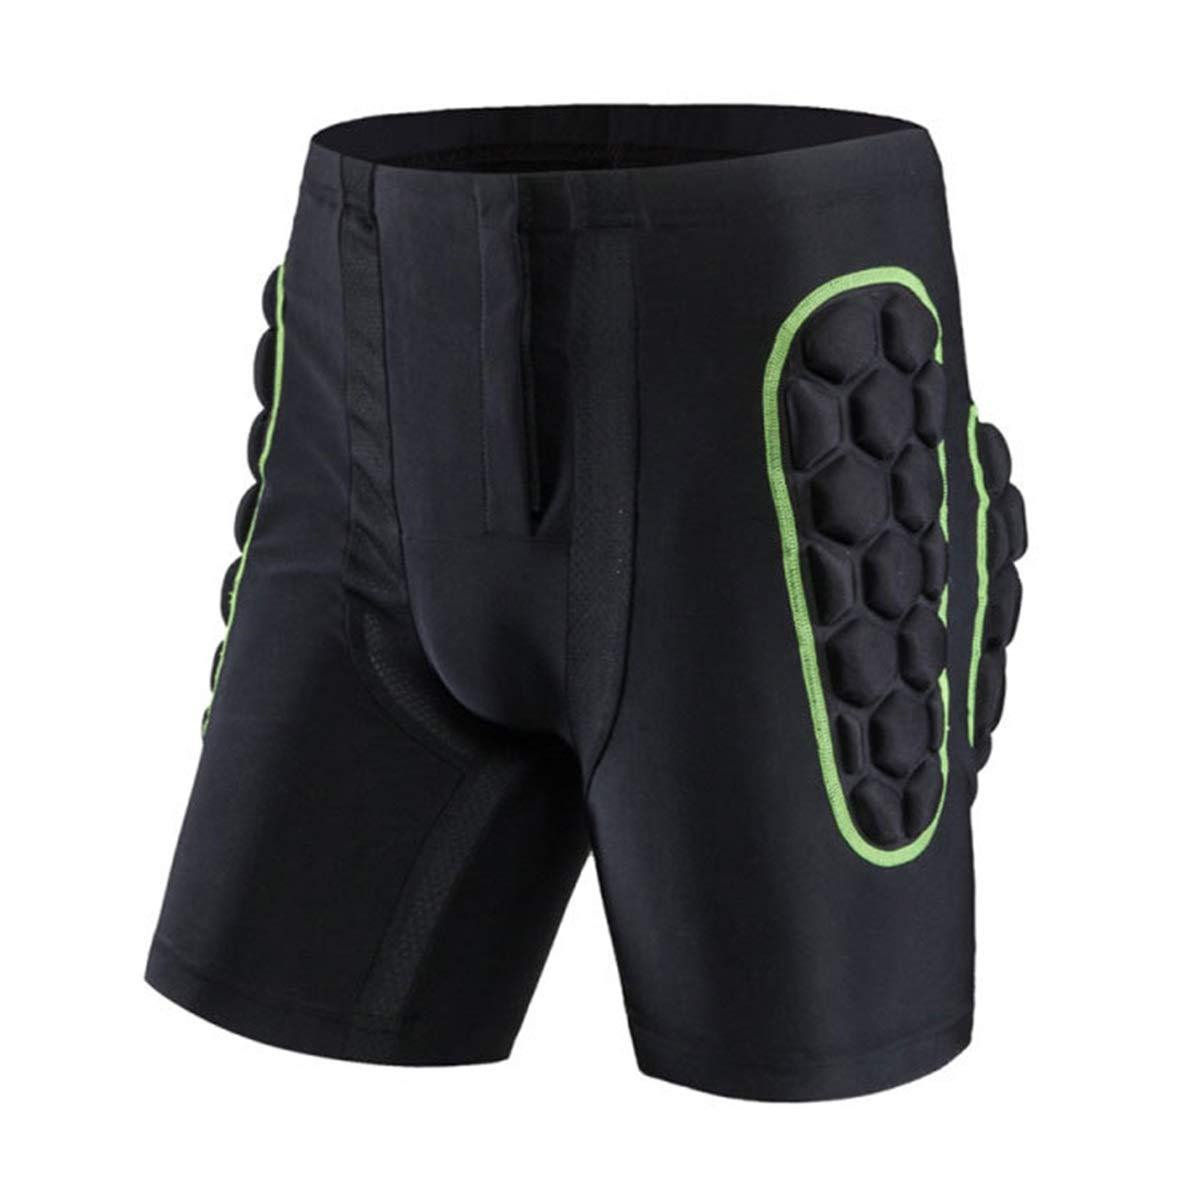 3D Ski Padded Protection Shorts,Protective Hip Gear Breathable Lightweight for Skate Snowboard Skating Skiing for Men /& Women